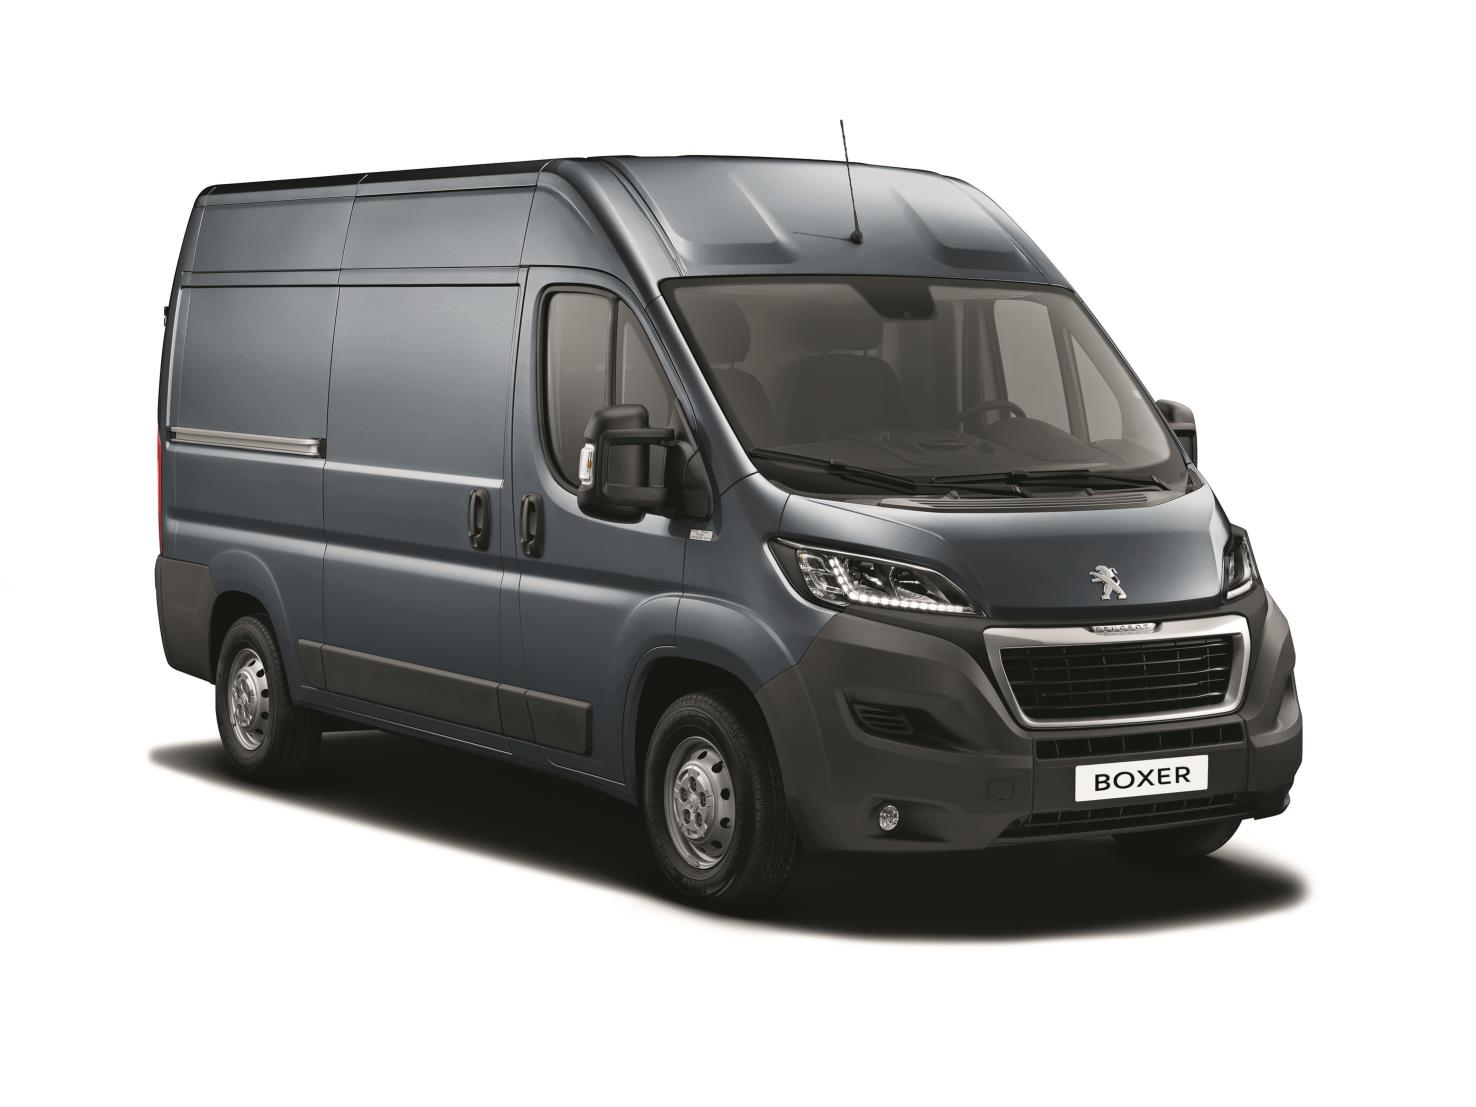 peugeot boxer gets bluehdi technology. Black Bedroom Furniture Sets. Home Design Ideas